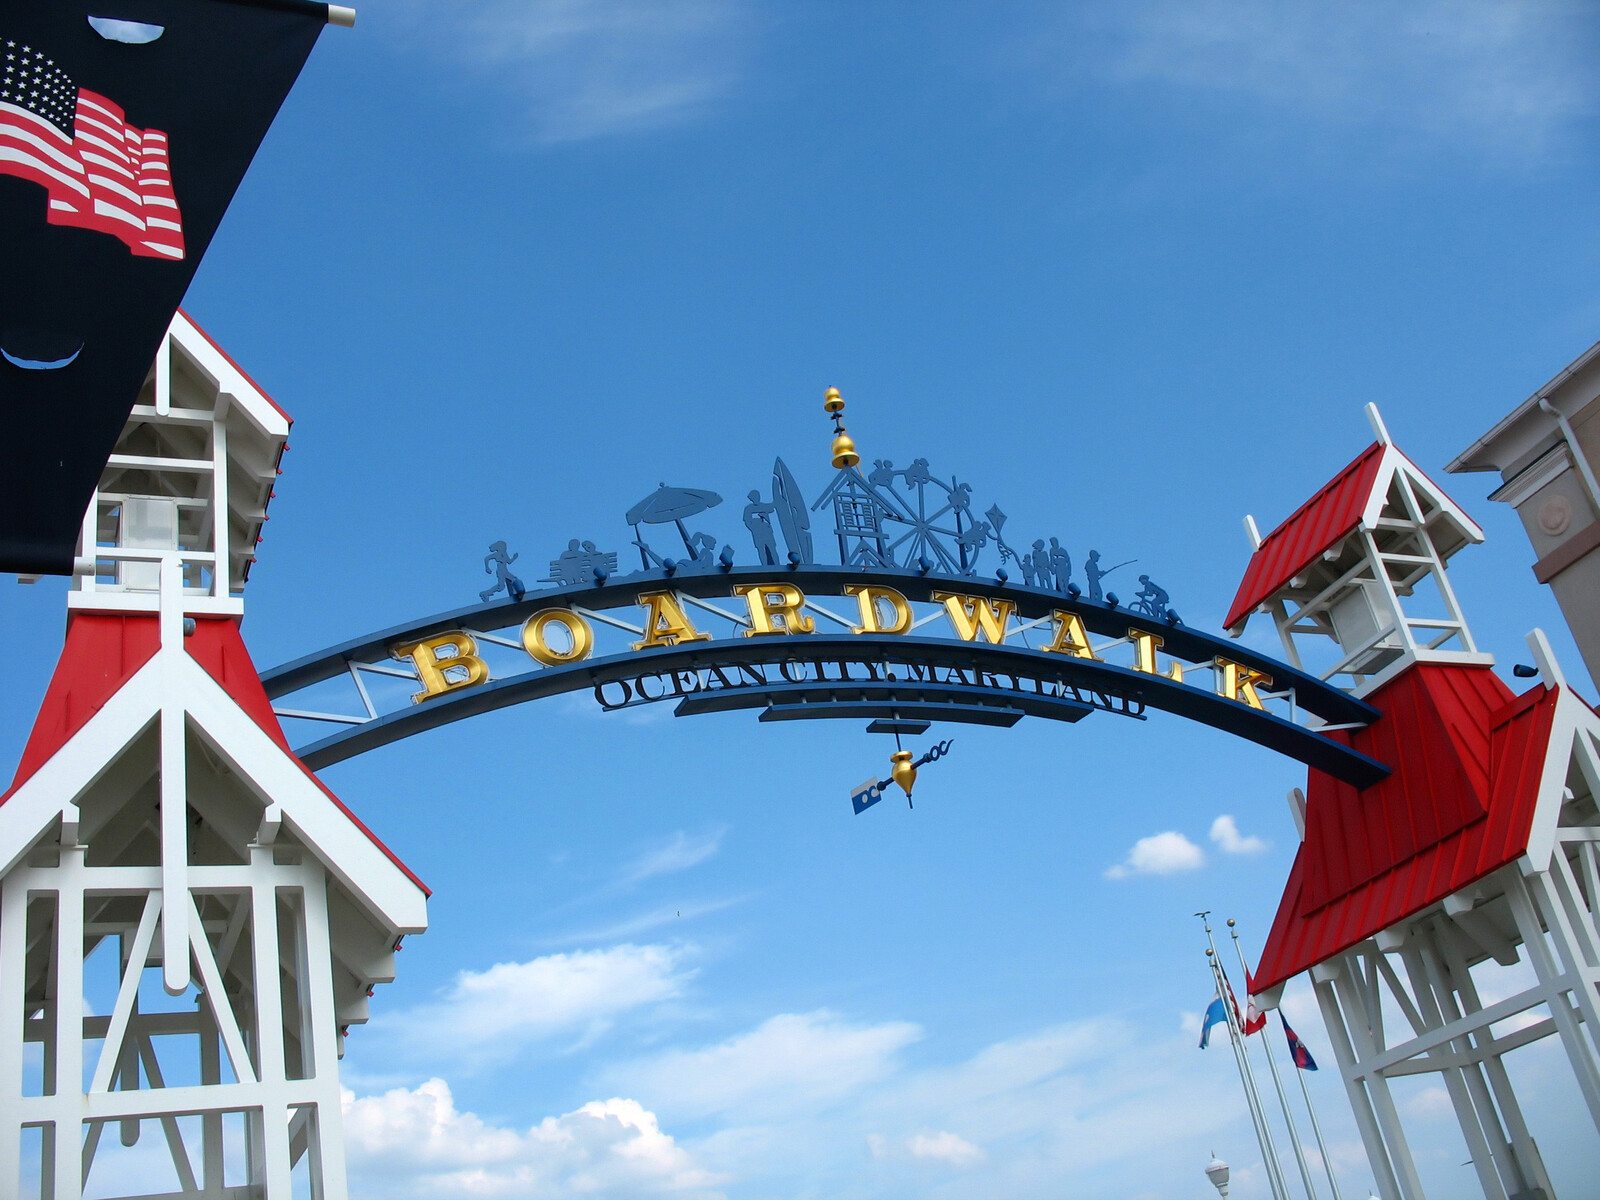 The famous public boardwalk sign overhanging the main entrance of the boardwalk in ocean city, with clear blue skies